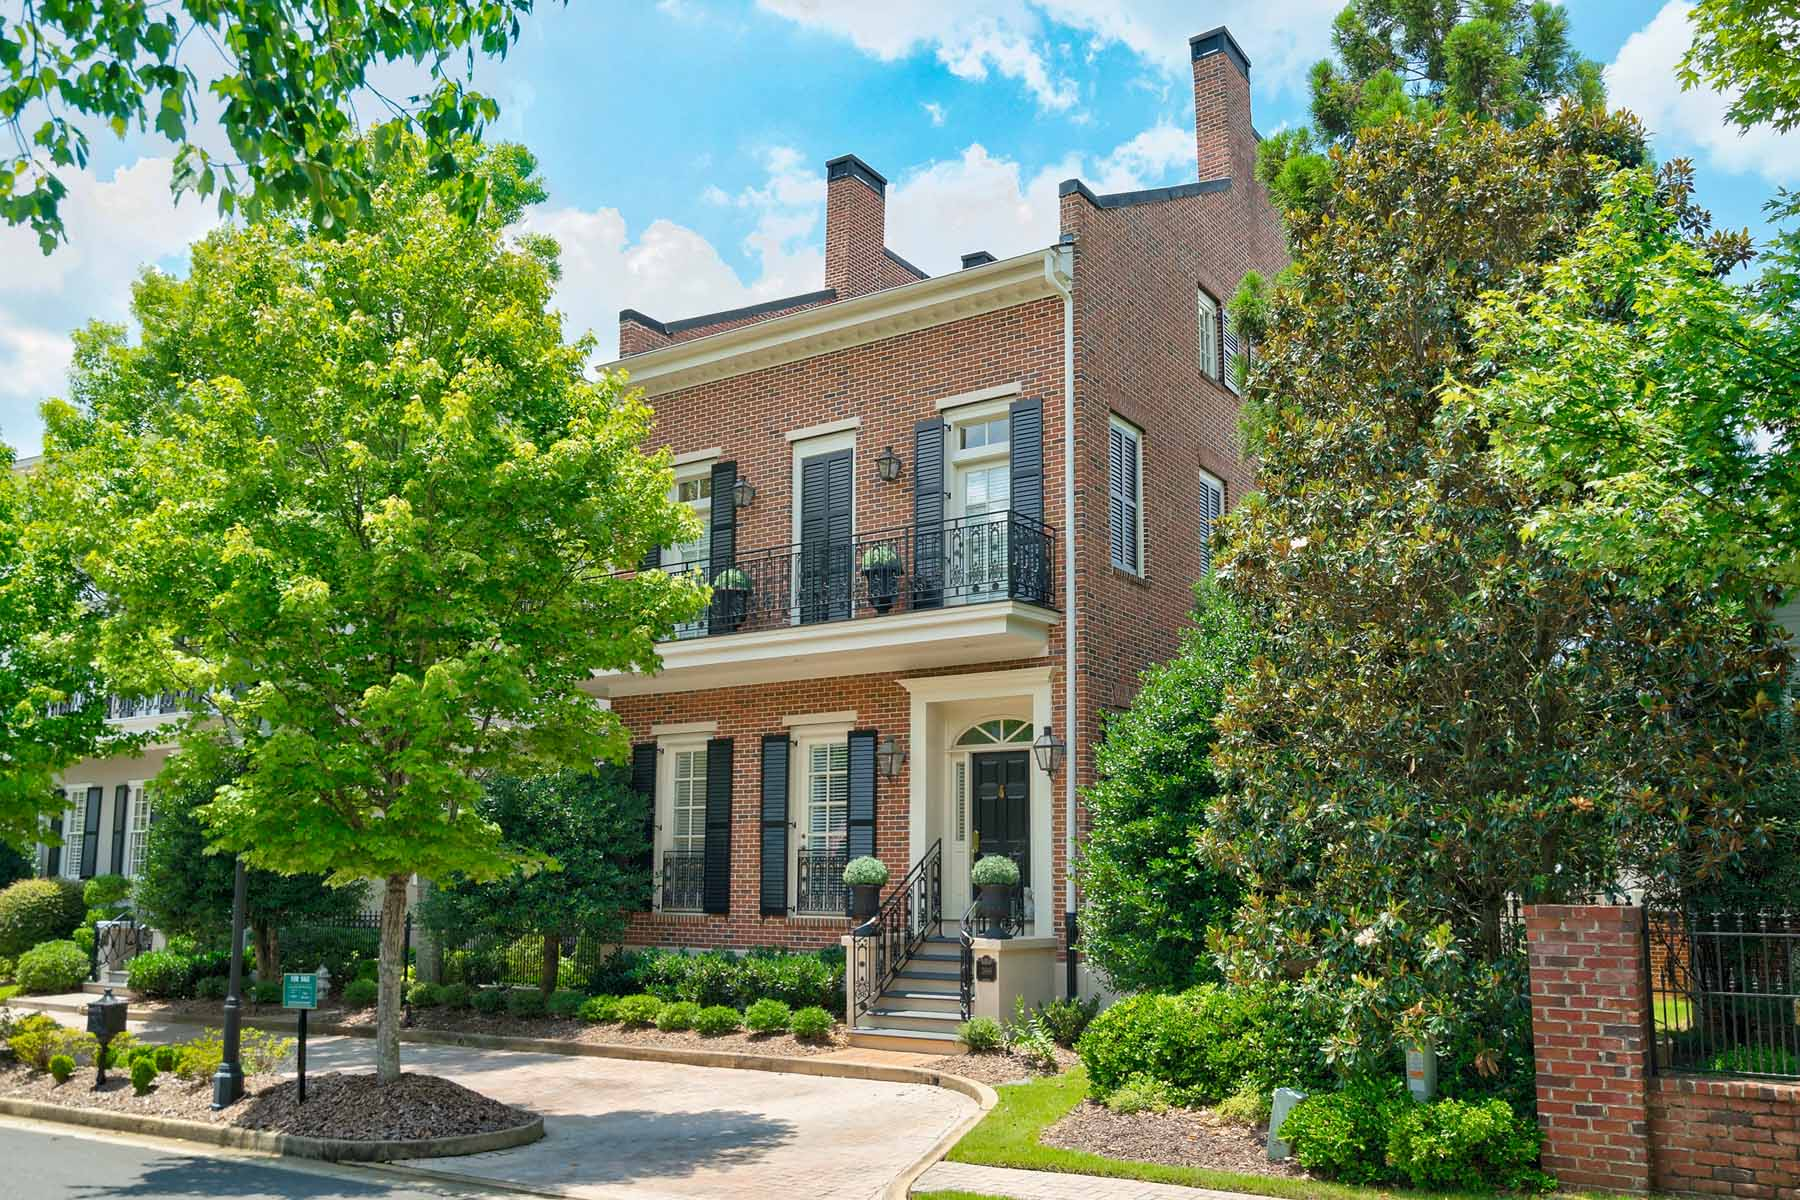 Single Family Homes for Active at Beautifully Maintained In Sweet Bottom Plantation 3869 Saint Elisabeth Square Duluth, Georgia 30096 United States